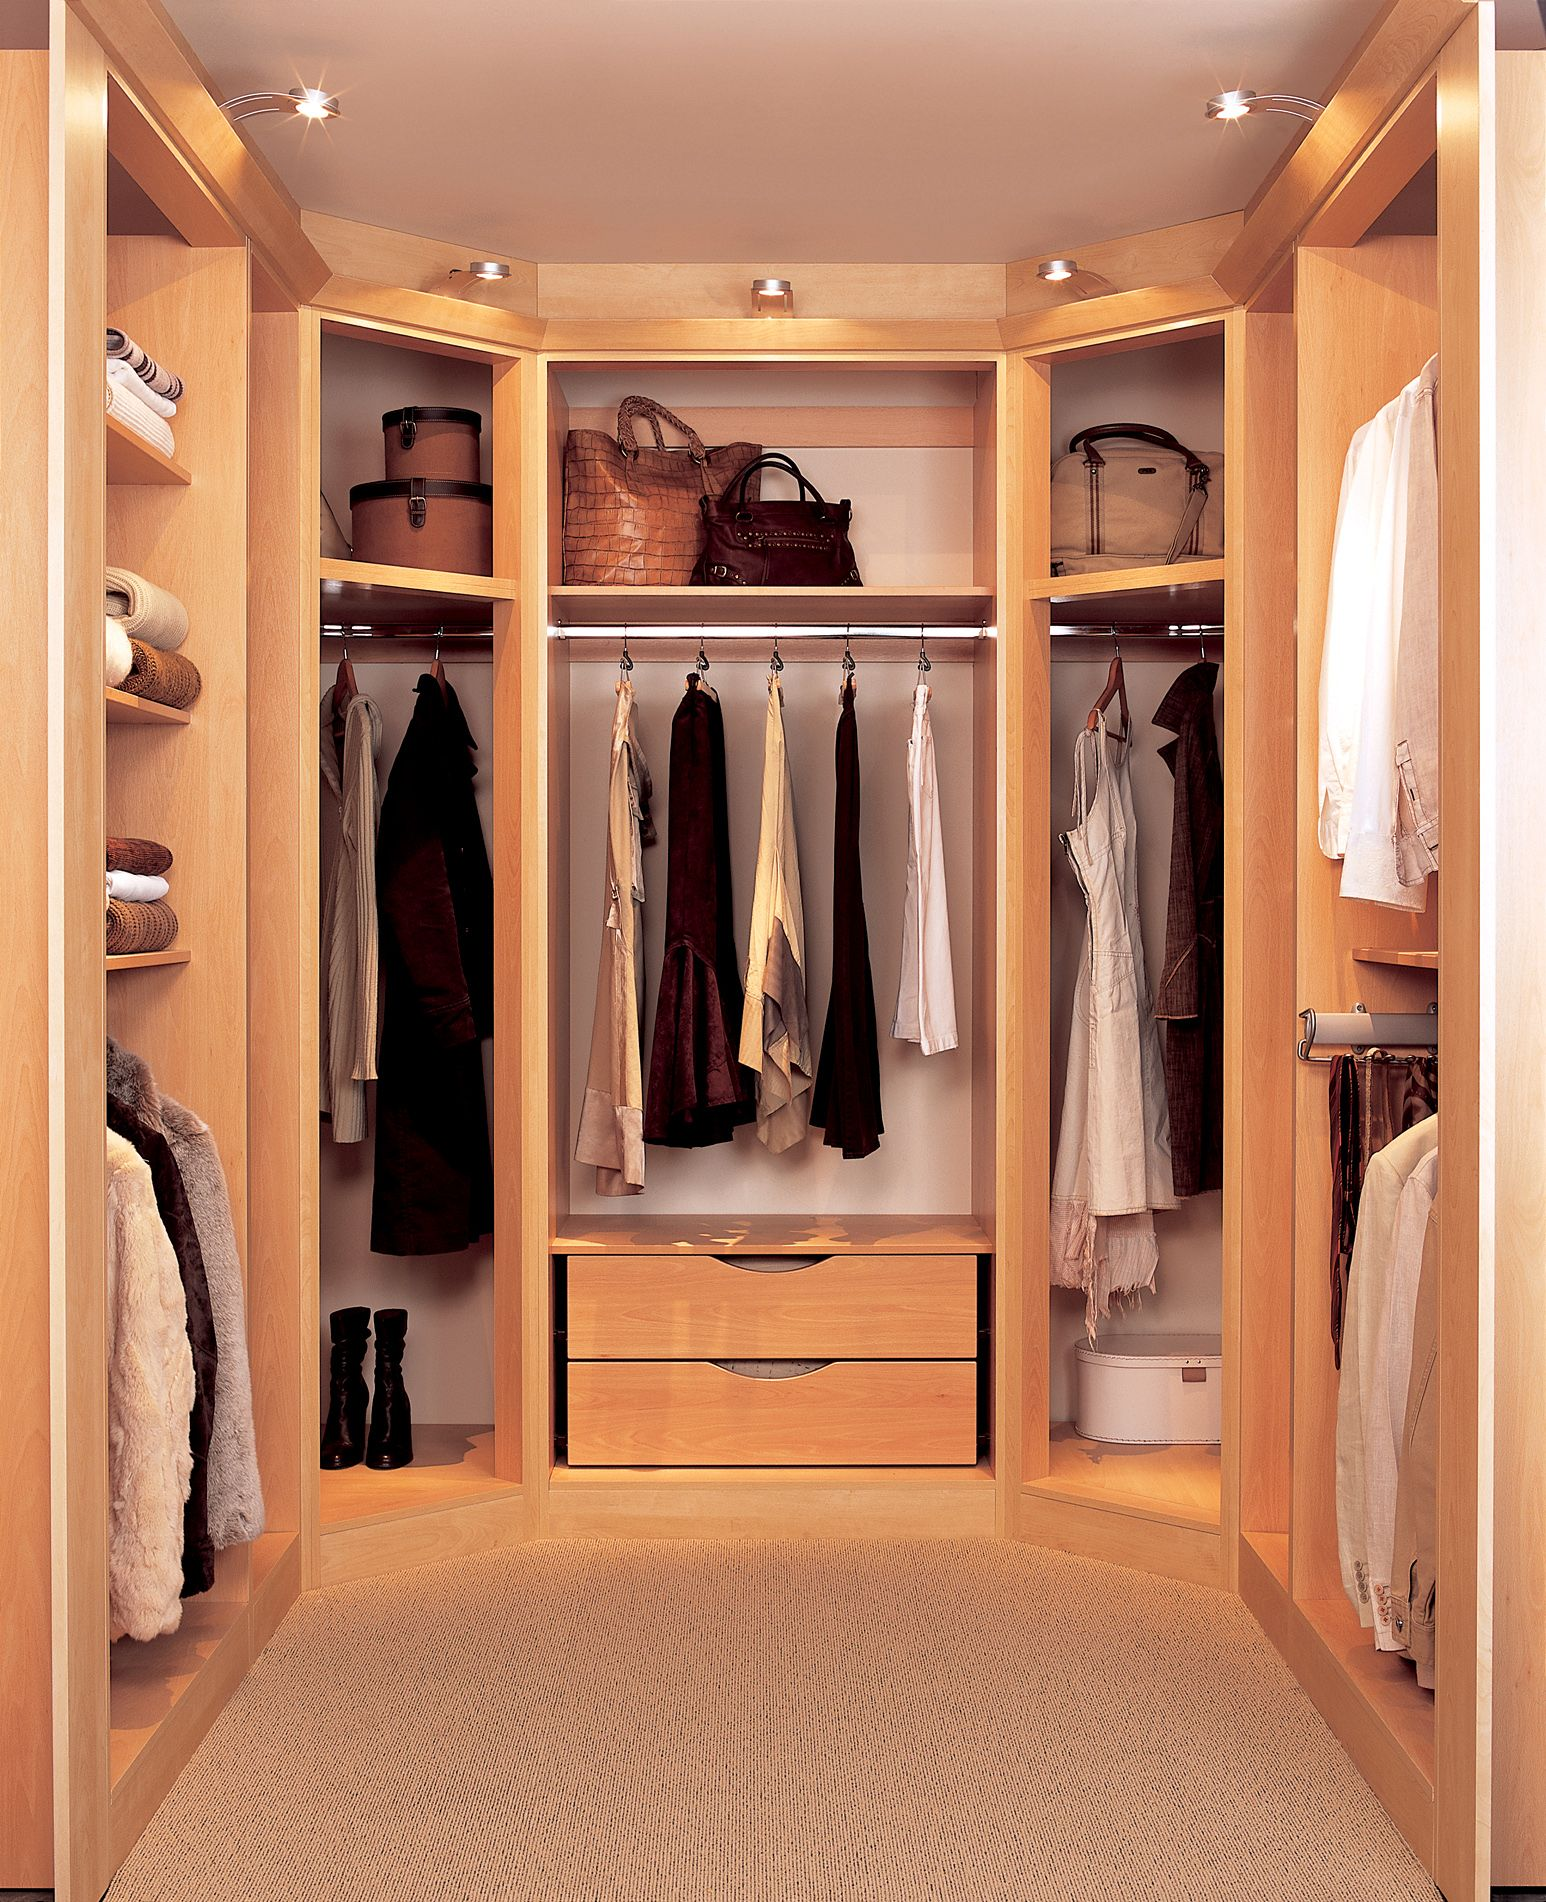 contemporary Home Depot Closet Organizers with modern lighting